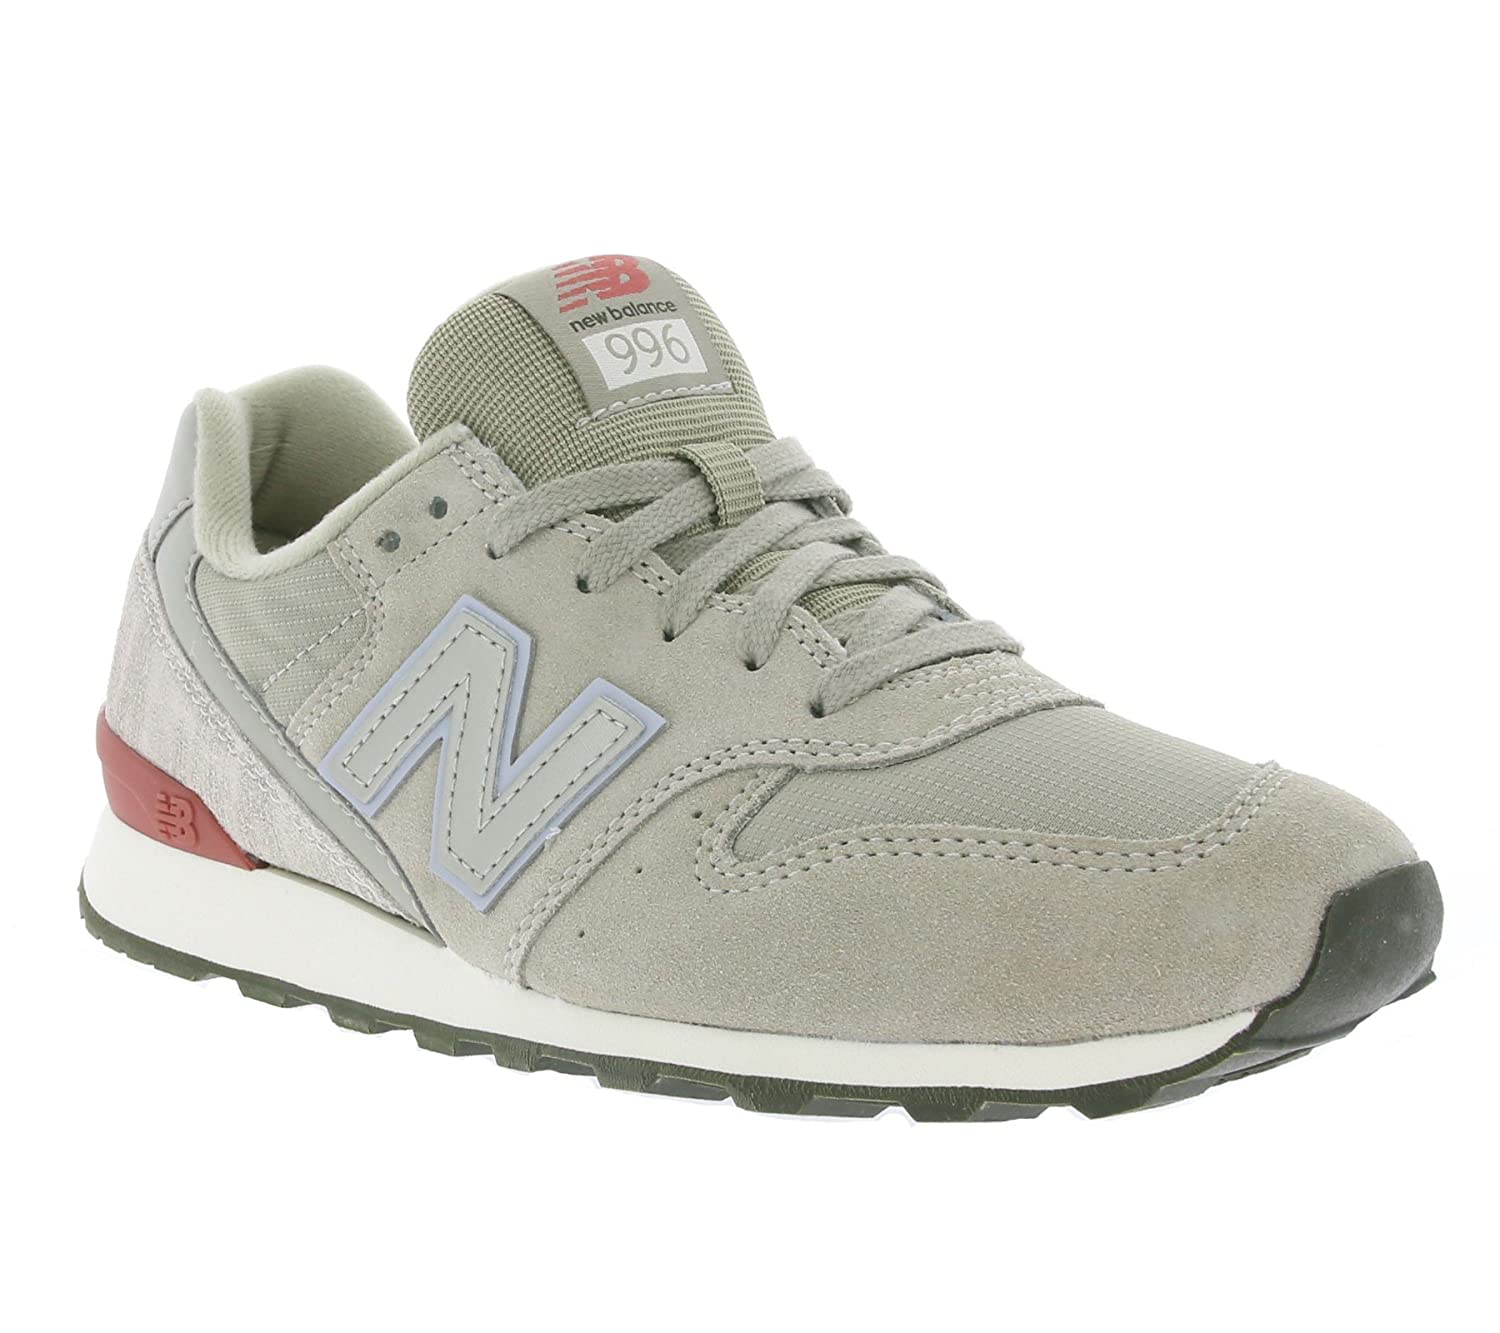 New Balance Carnival 996, Sneakers Basses Femme MainApps WR996E